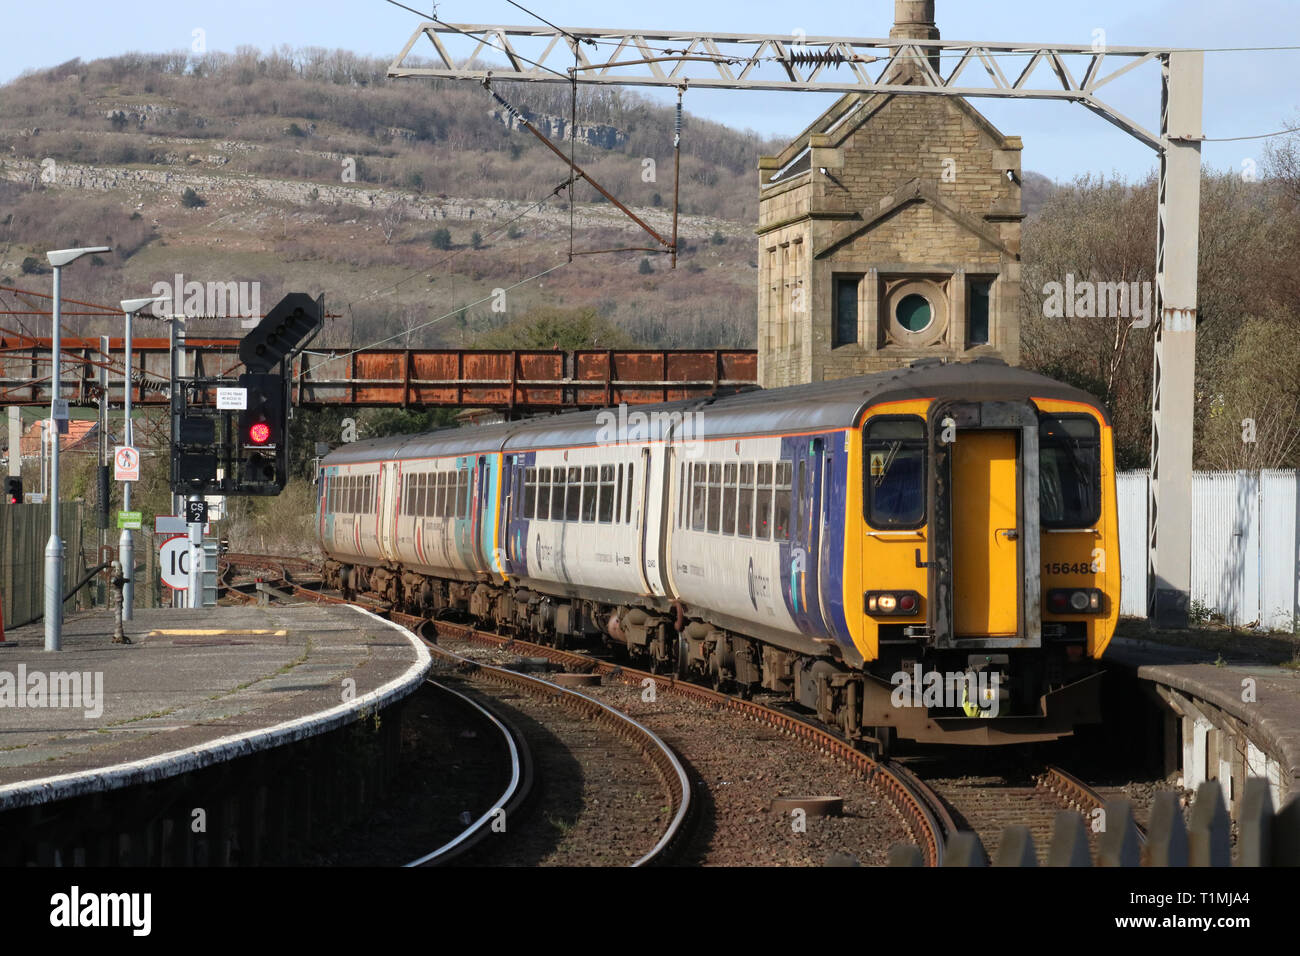 Two class 156 super sprinter diesel multiple unit trains entering Carnforth station, platform 1, with a Northern passenger service on 25th March 2019. - Stock Image